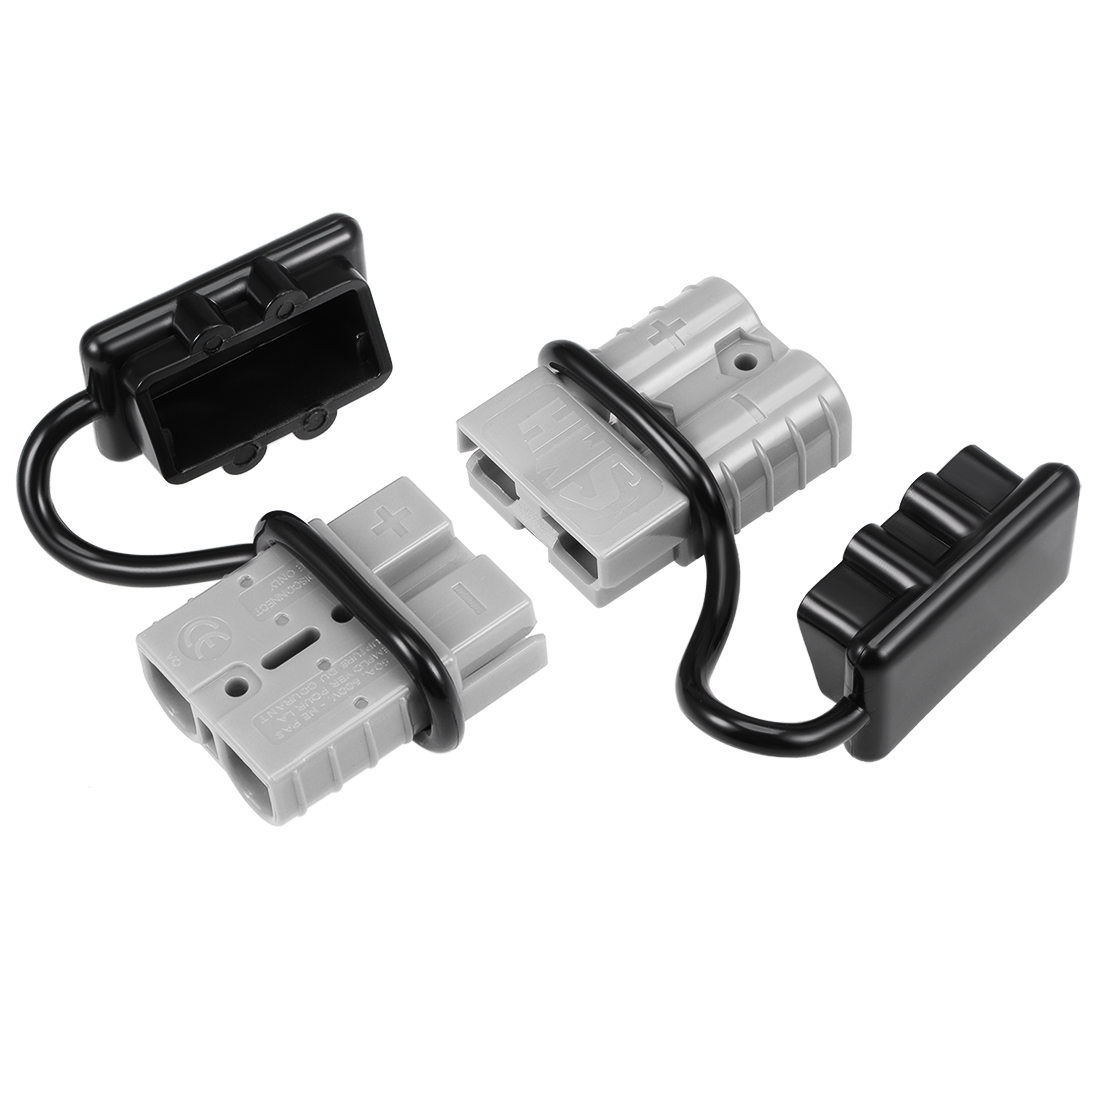 6 Gauge Battery Quick Connect Disconnect Kit 50A Wire Connector, Grey 2pcs